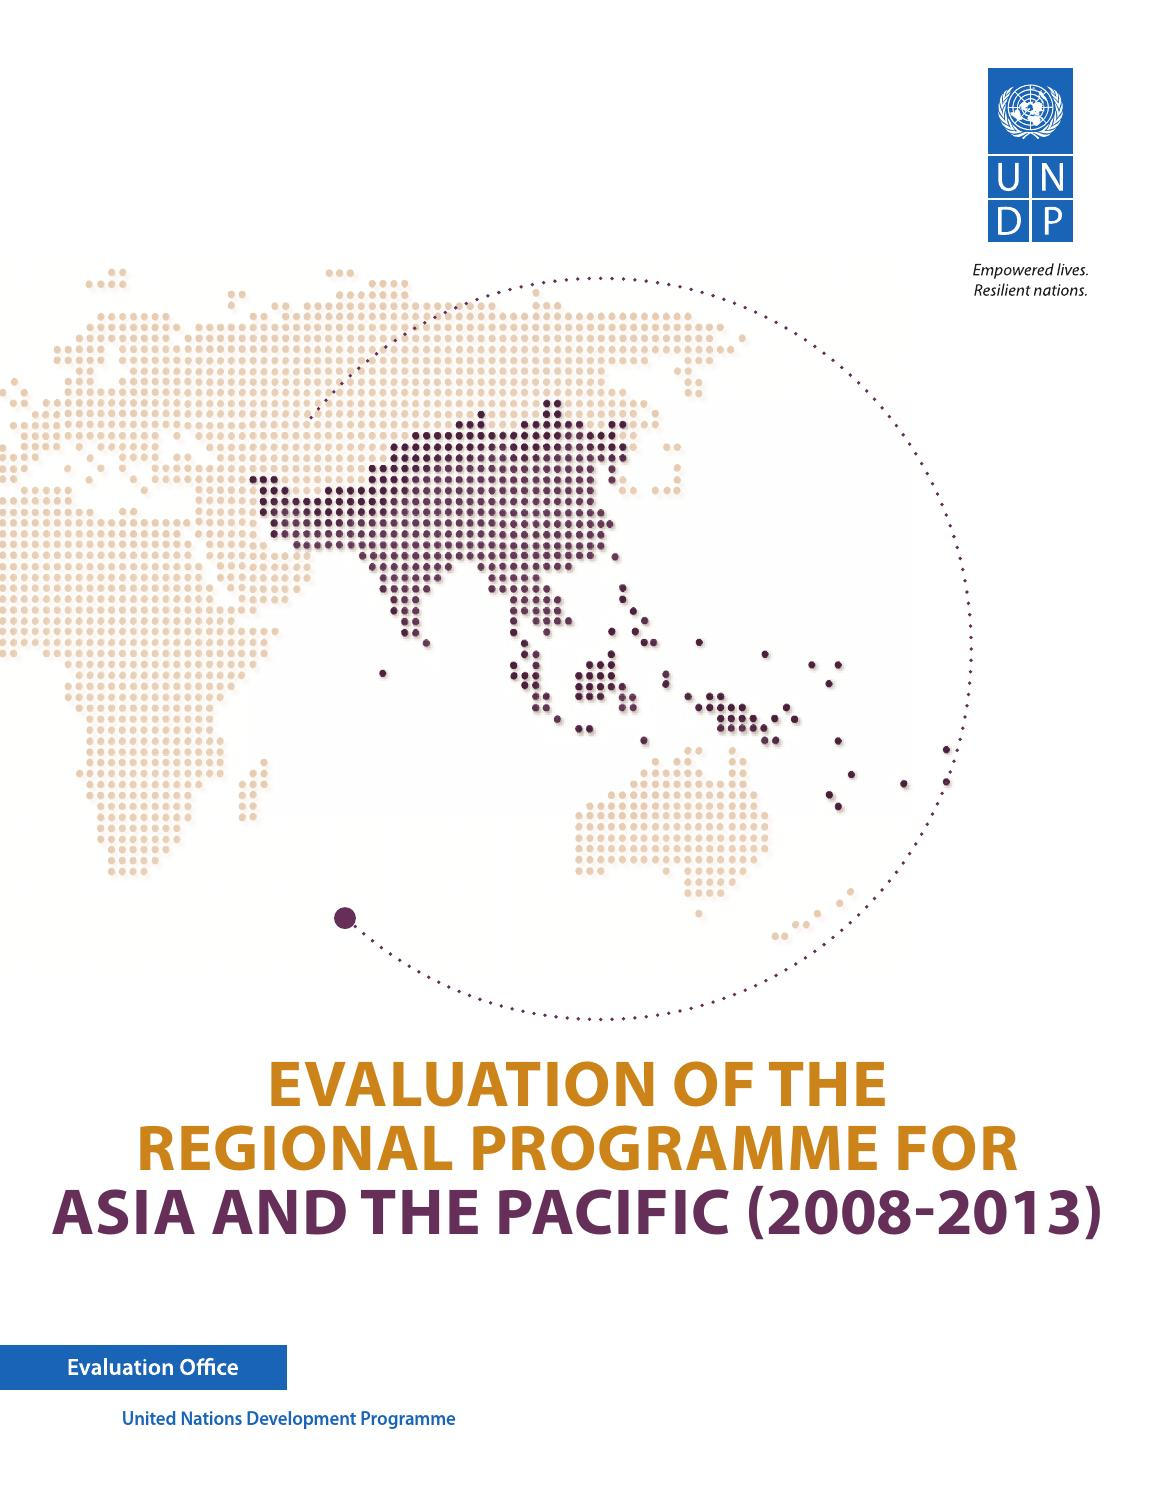 Evaluation of the Regional Programme for Asia and the Pacific (2008